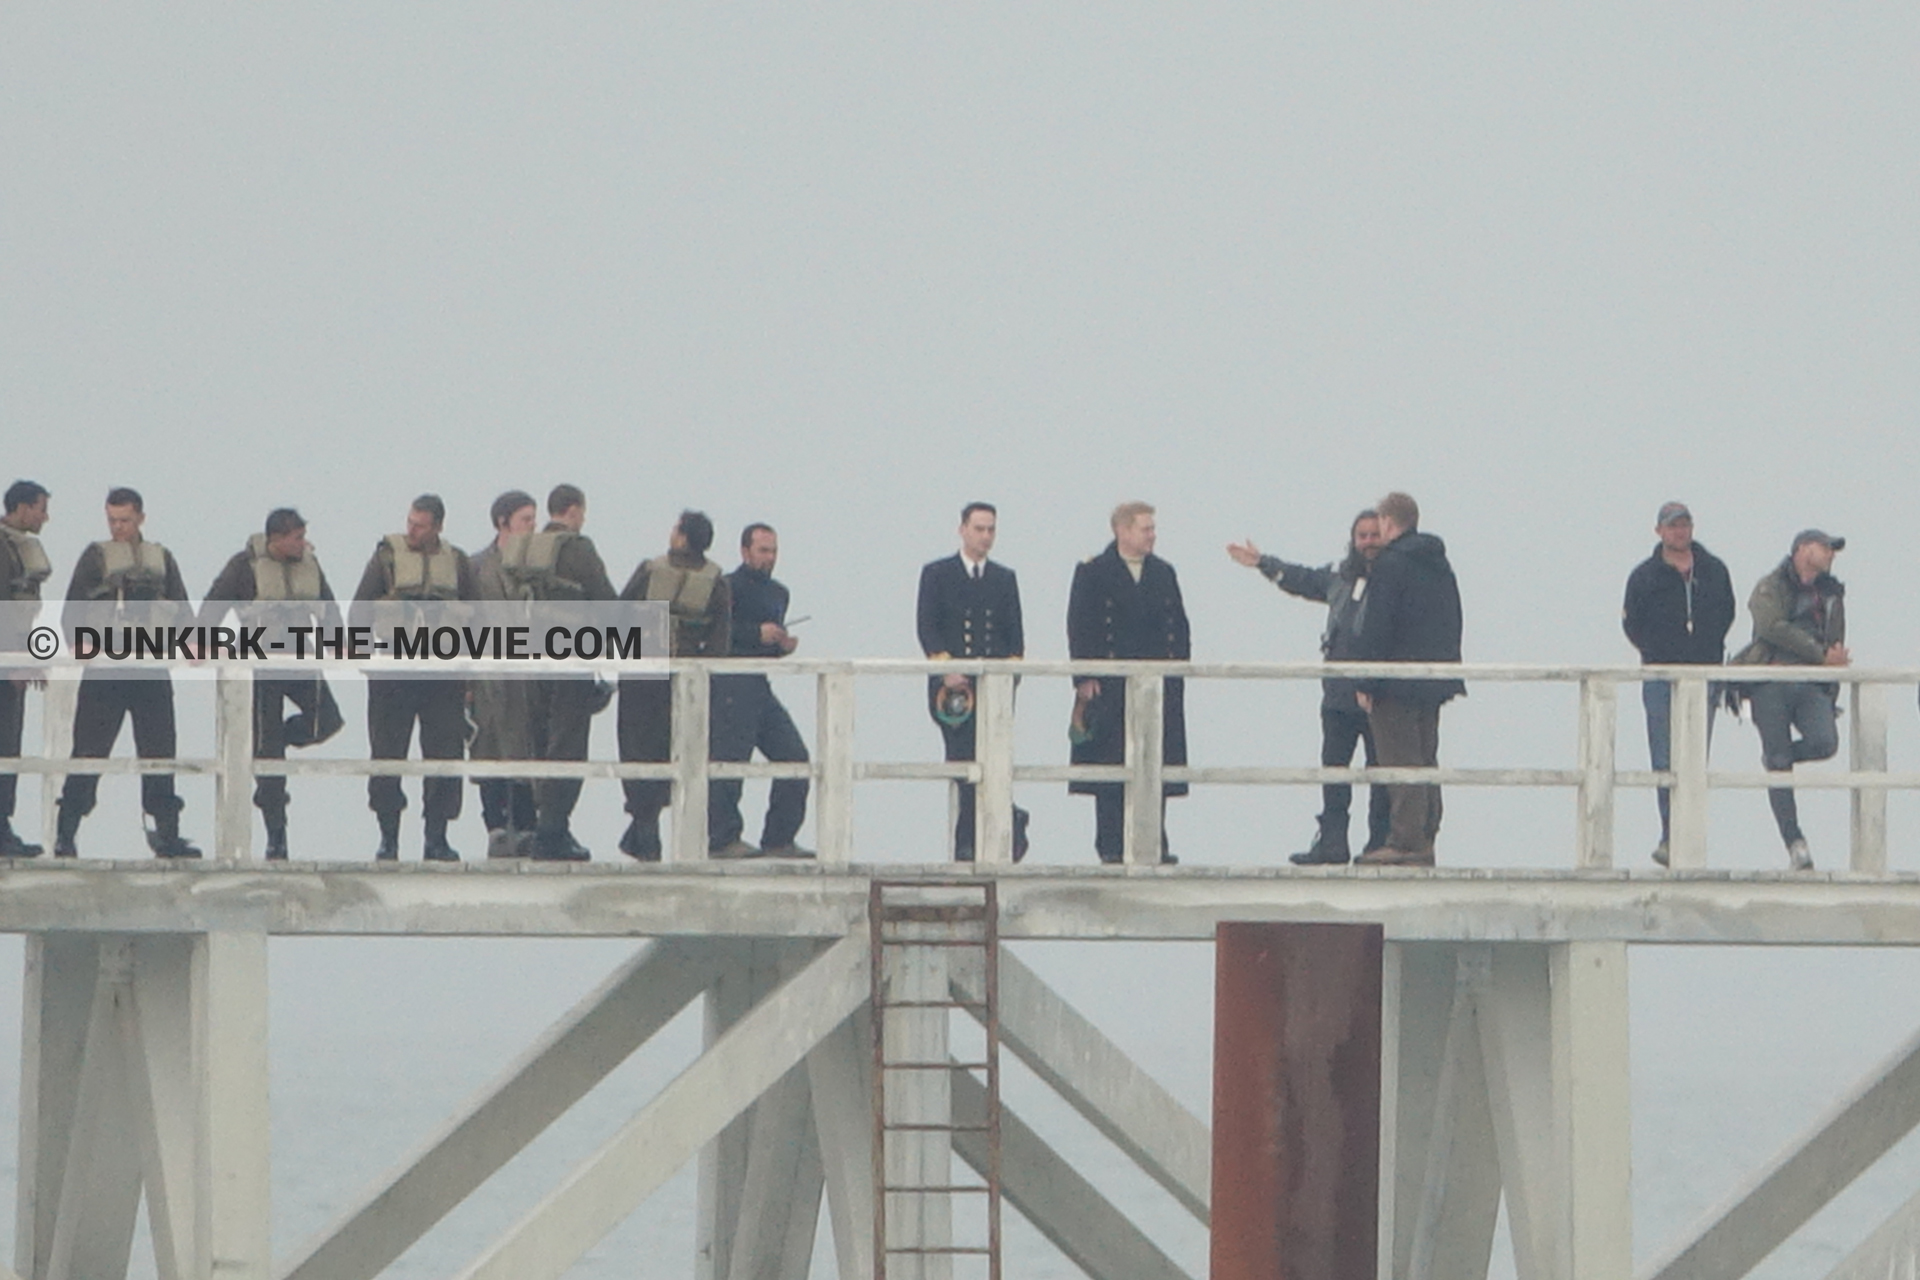 Picture with actor, grey sky, supernumeraries, Hoyte van Hoytema, EST pier, Kenneth Branagh, Christopher Nolan, technical team,  from behind the scene of the Dunkirk movie by Nolan